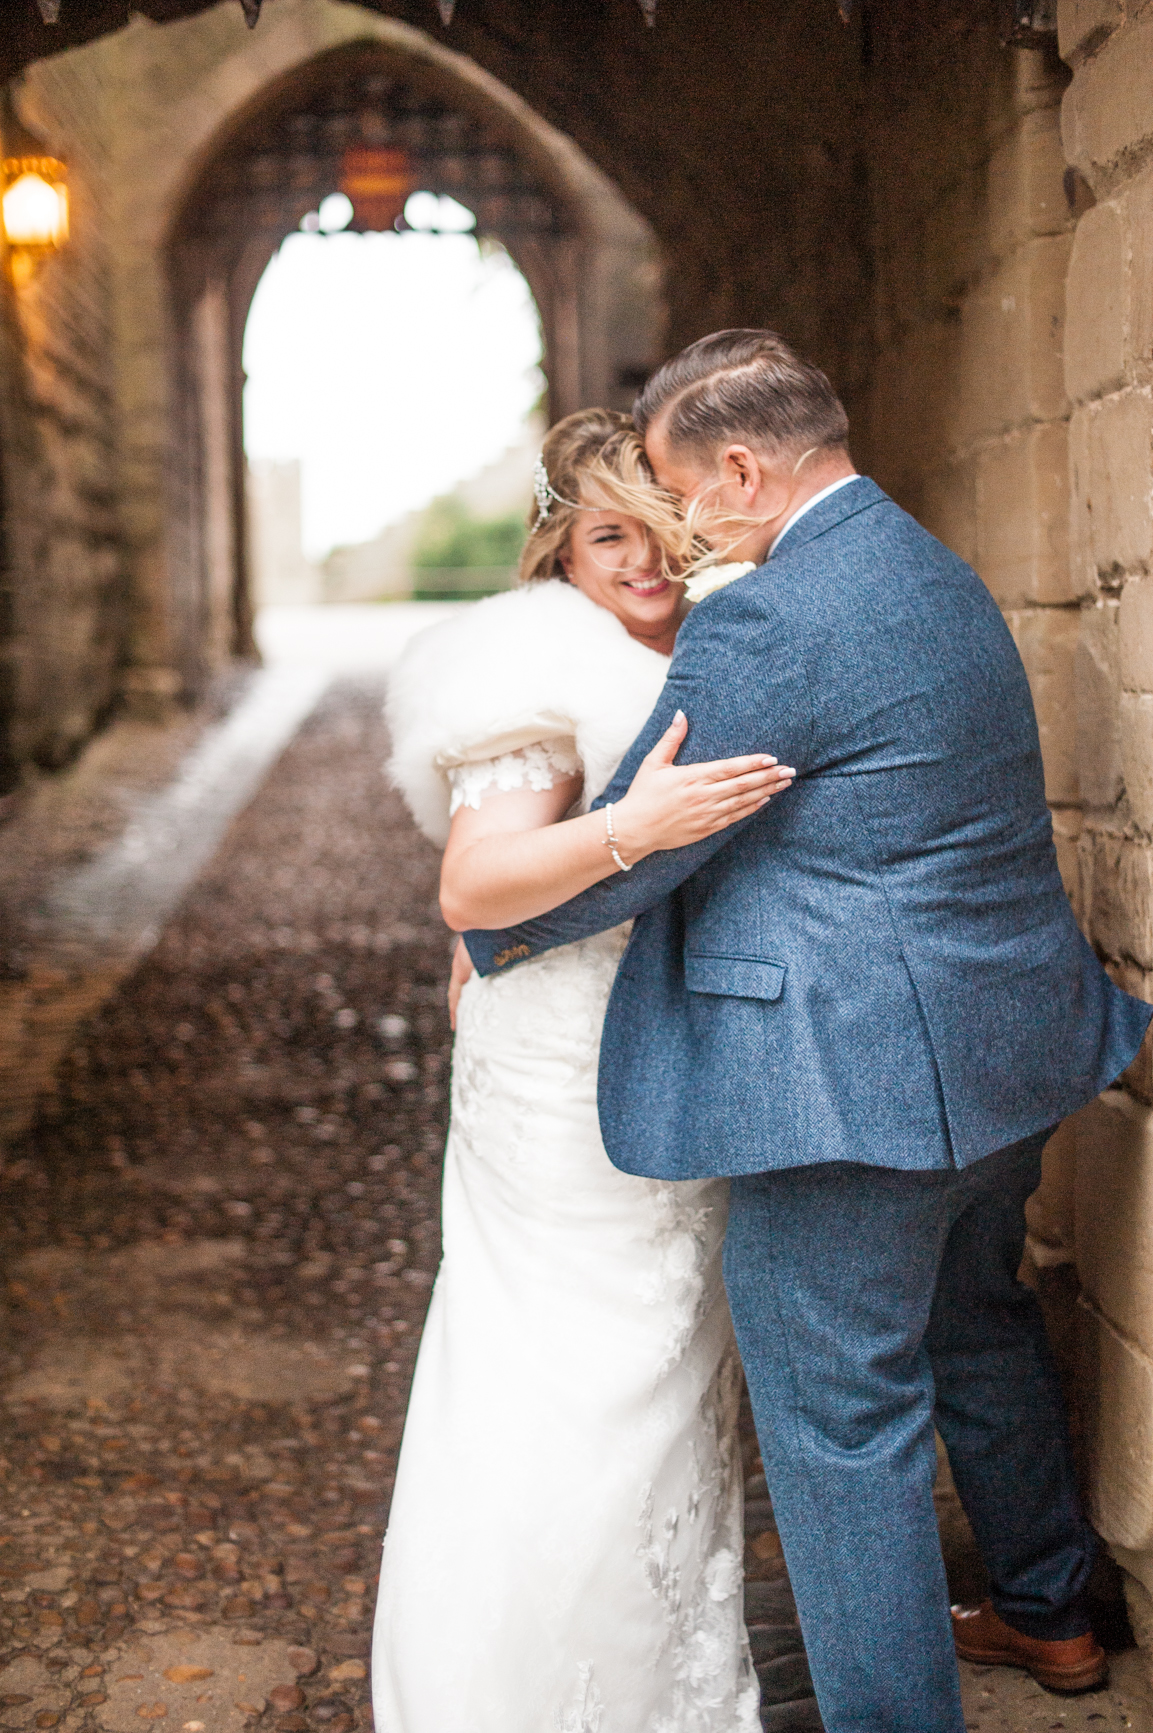 Andy and Terri at Warwick castle for wedding photos